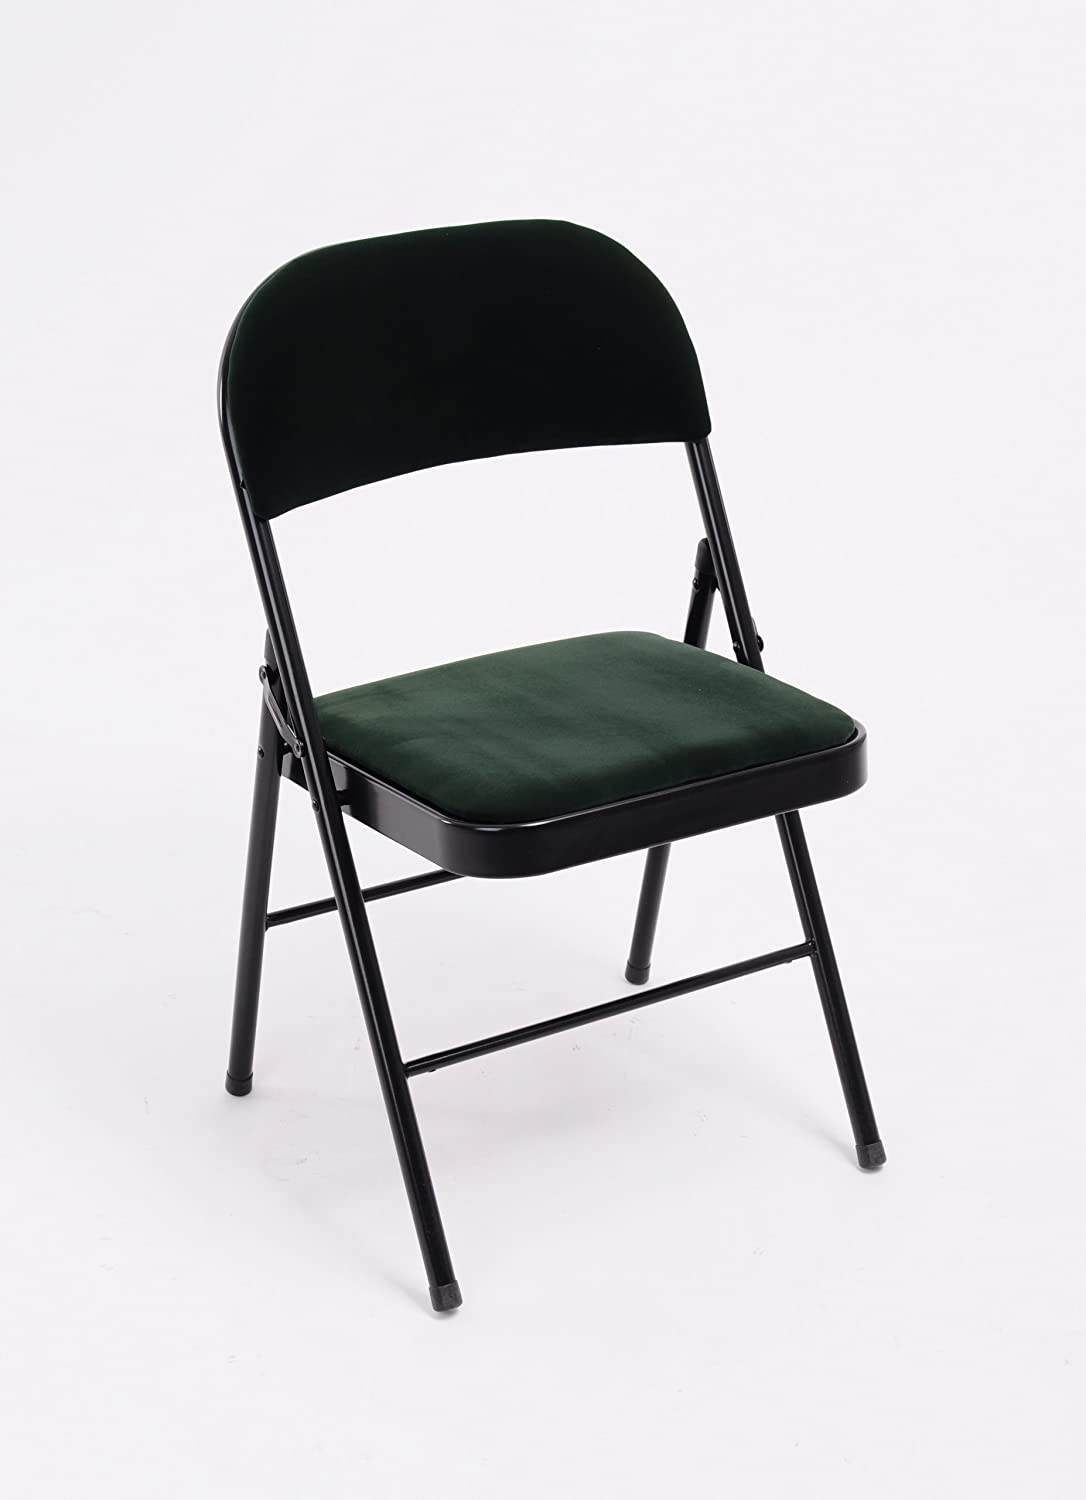 metal padded folding chairs. SpecialShare Simplylife Metal Folding Chair With Cushion----Green: Amazon.co.uk: Kitchen \u0026 Home Padded Chairs I